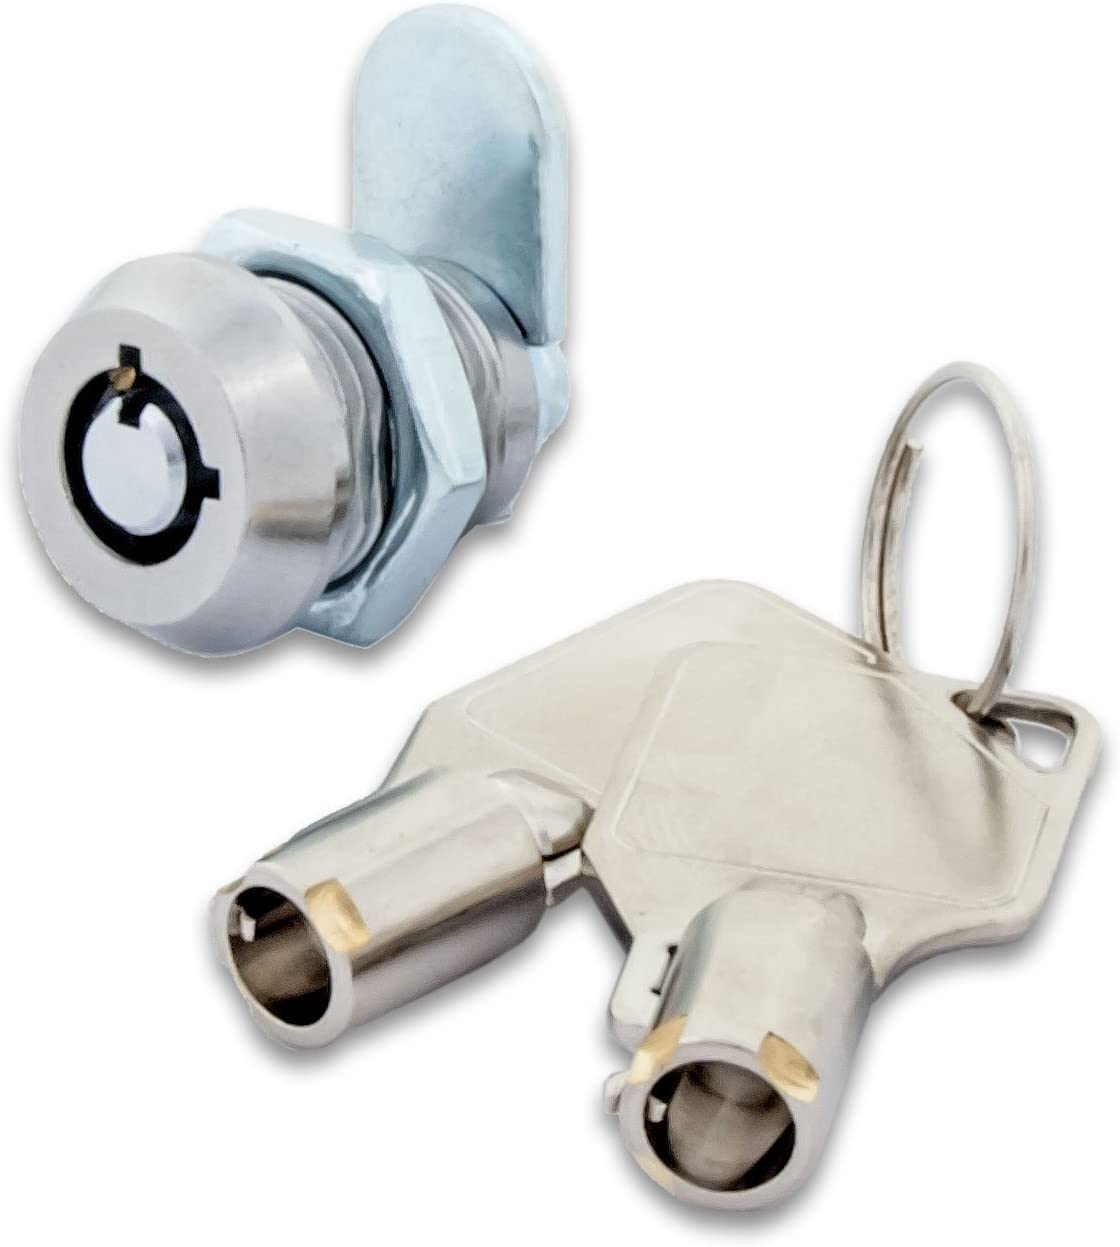 "FJM Security 2200AL-KA Miniature Tubular Cam Lock with 1/2"" Cylinder and Chrome Finish, Keyed Alike"